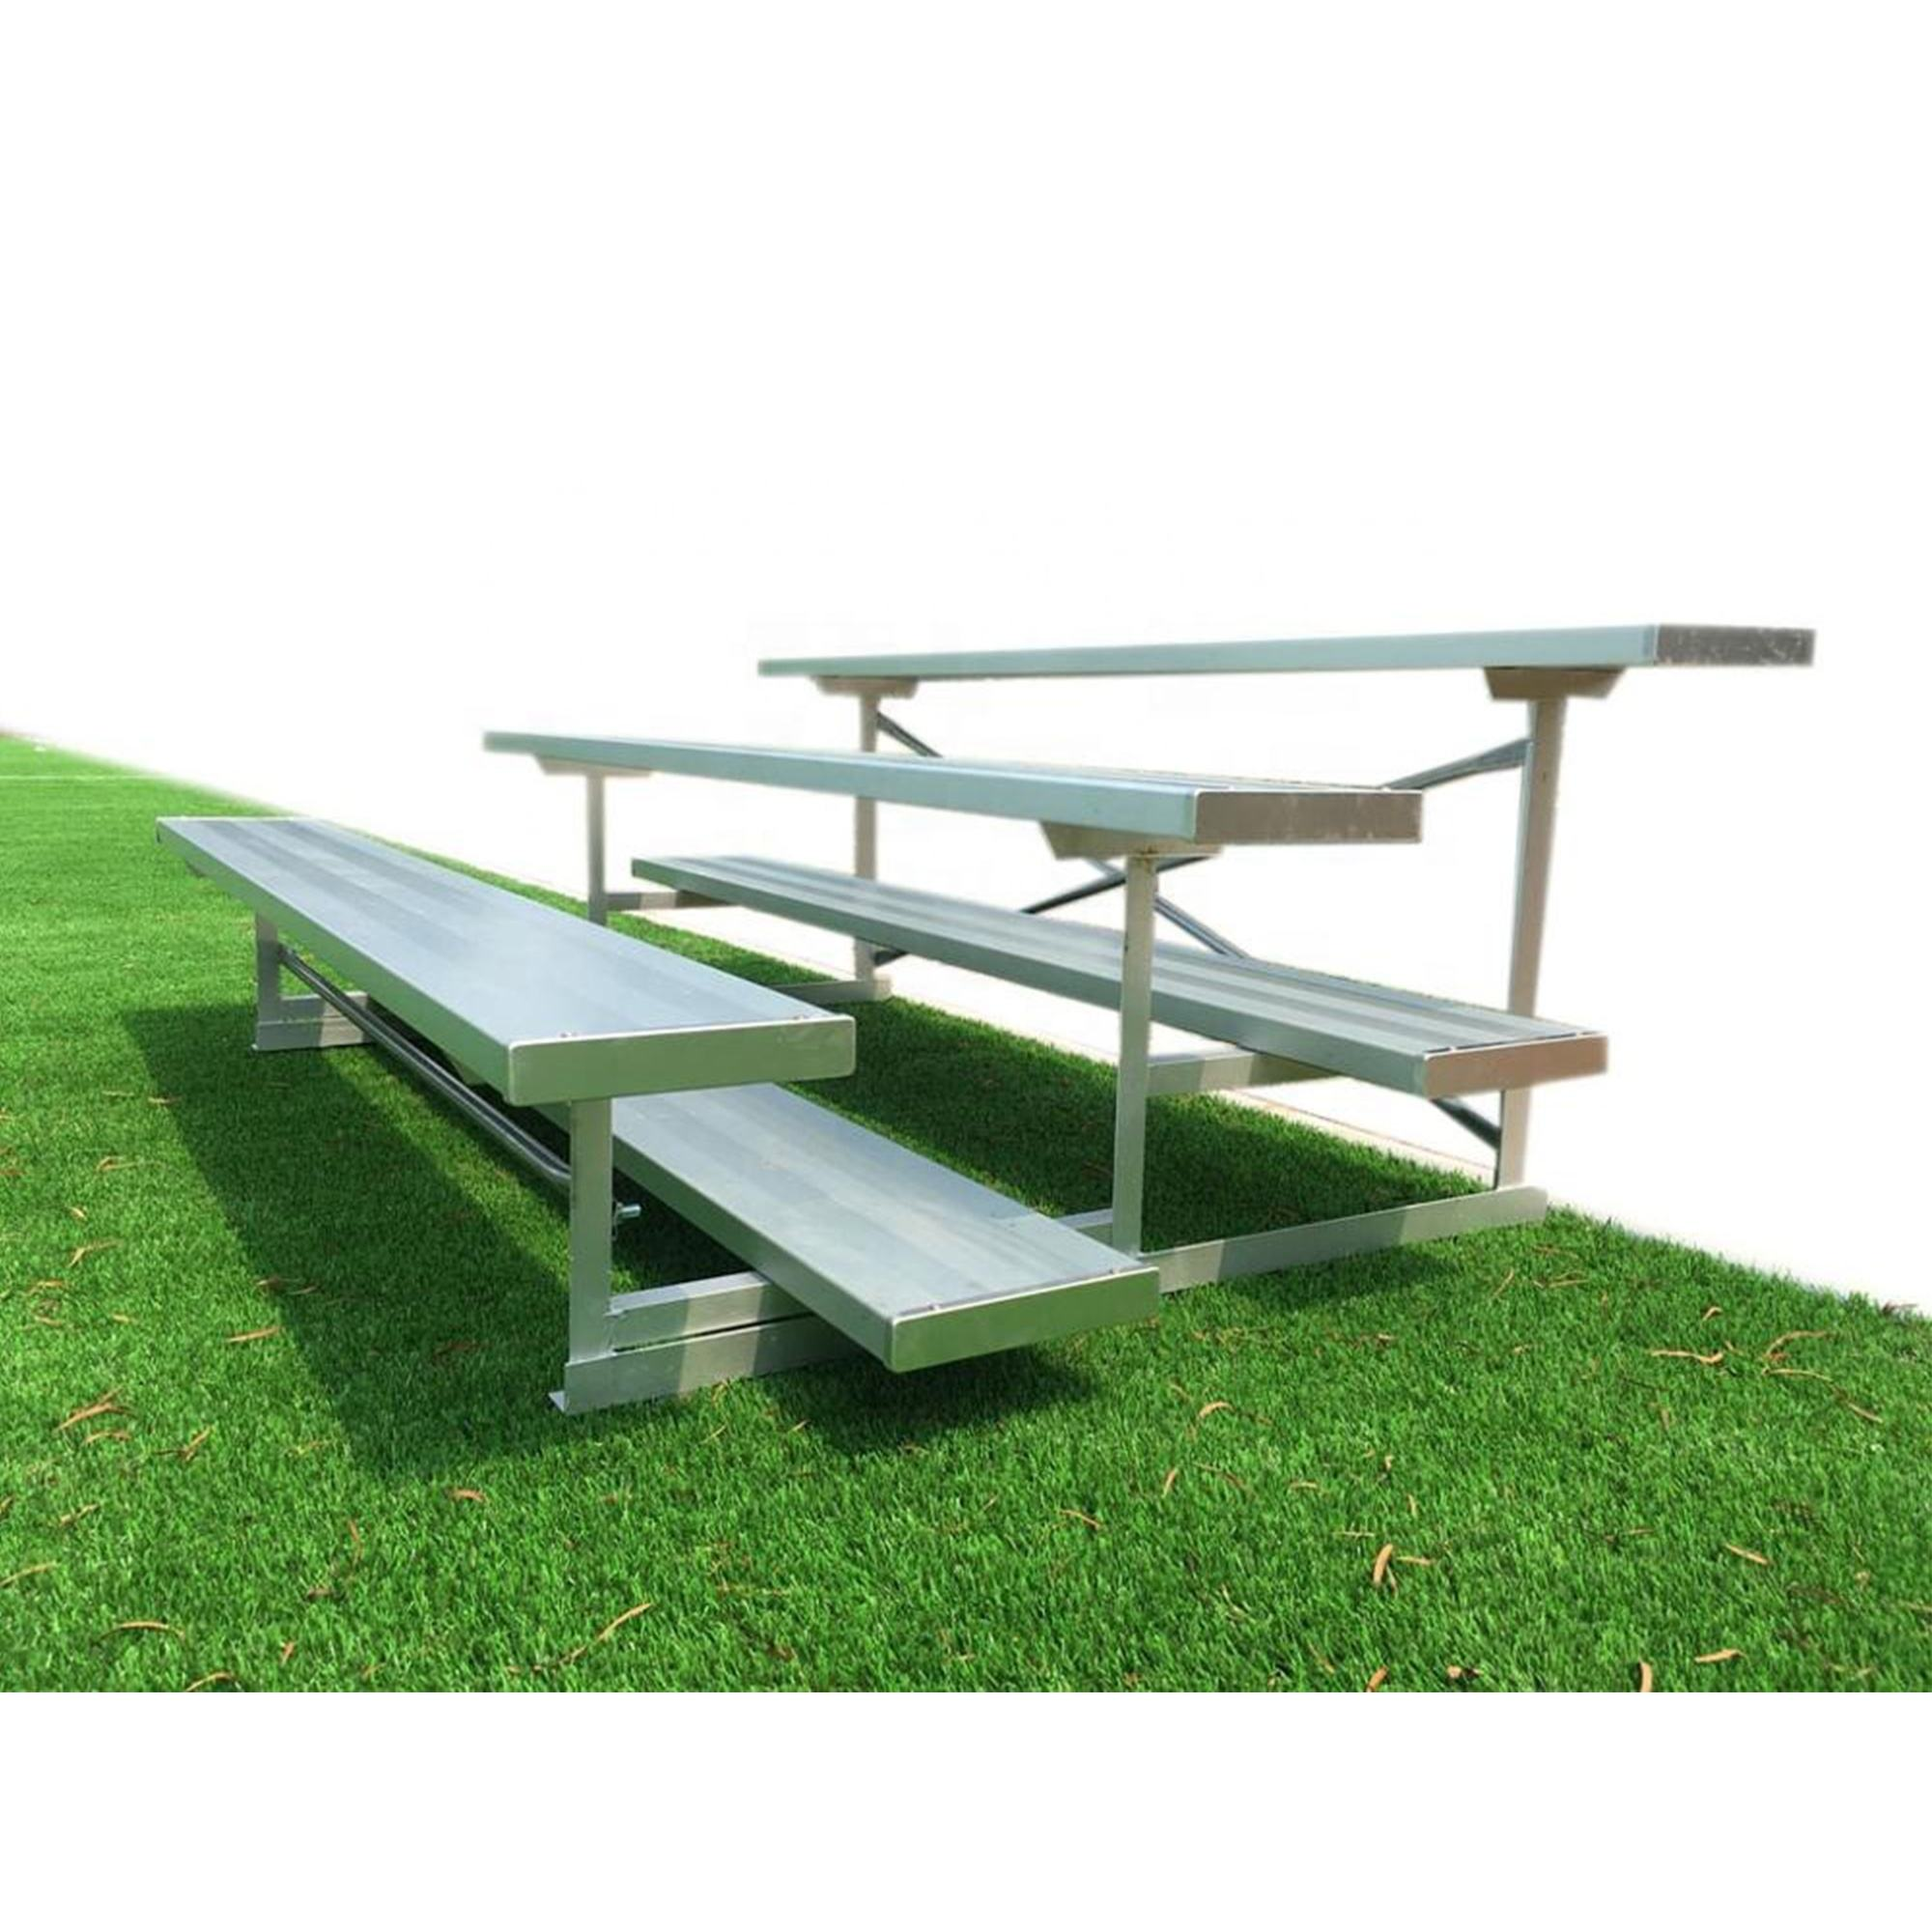 Taiwan hot sale bleacher planks stadium seating chart strong aluminum bleacher for outdoor and indoor benches